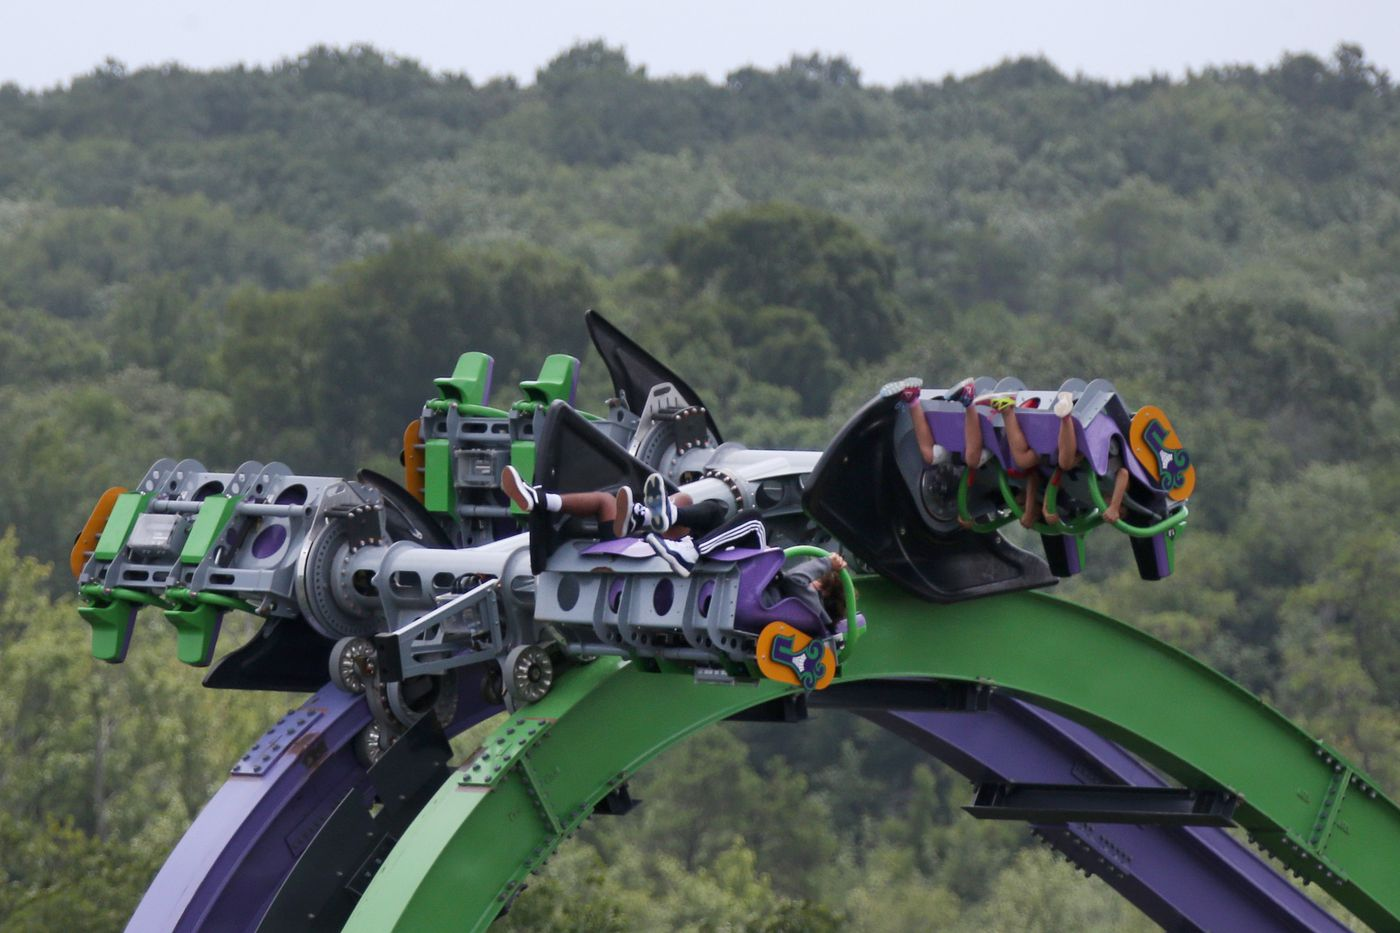 People ride the Joker at Great Adventure.